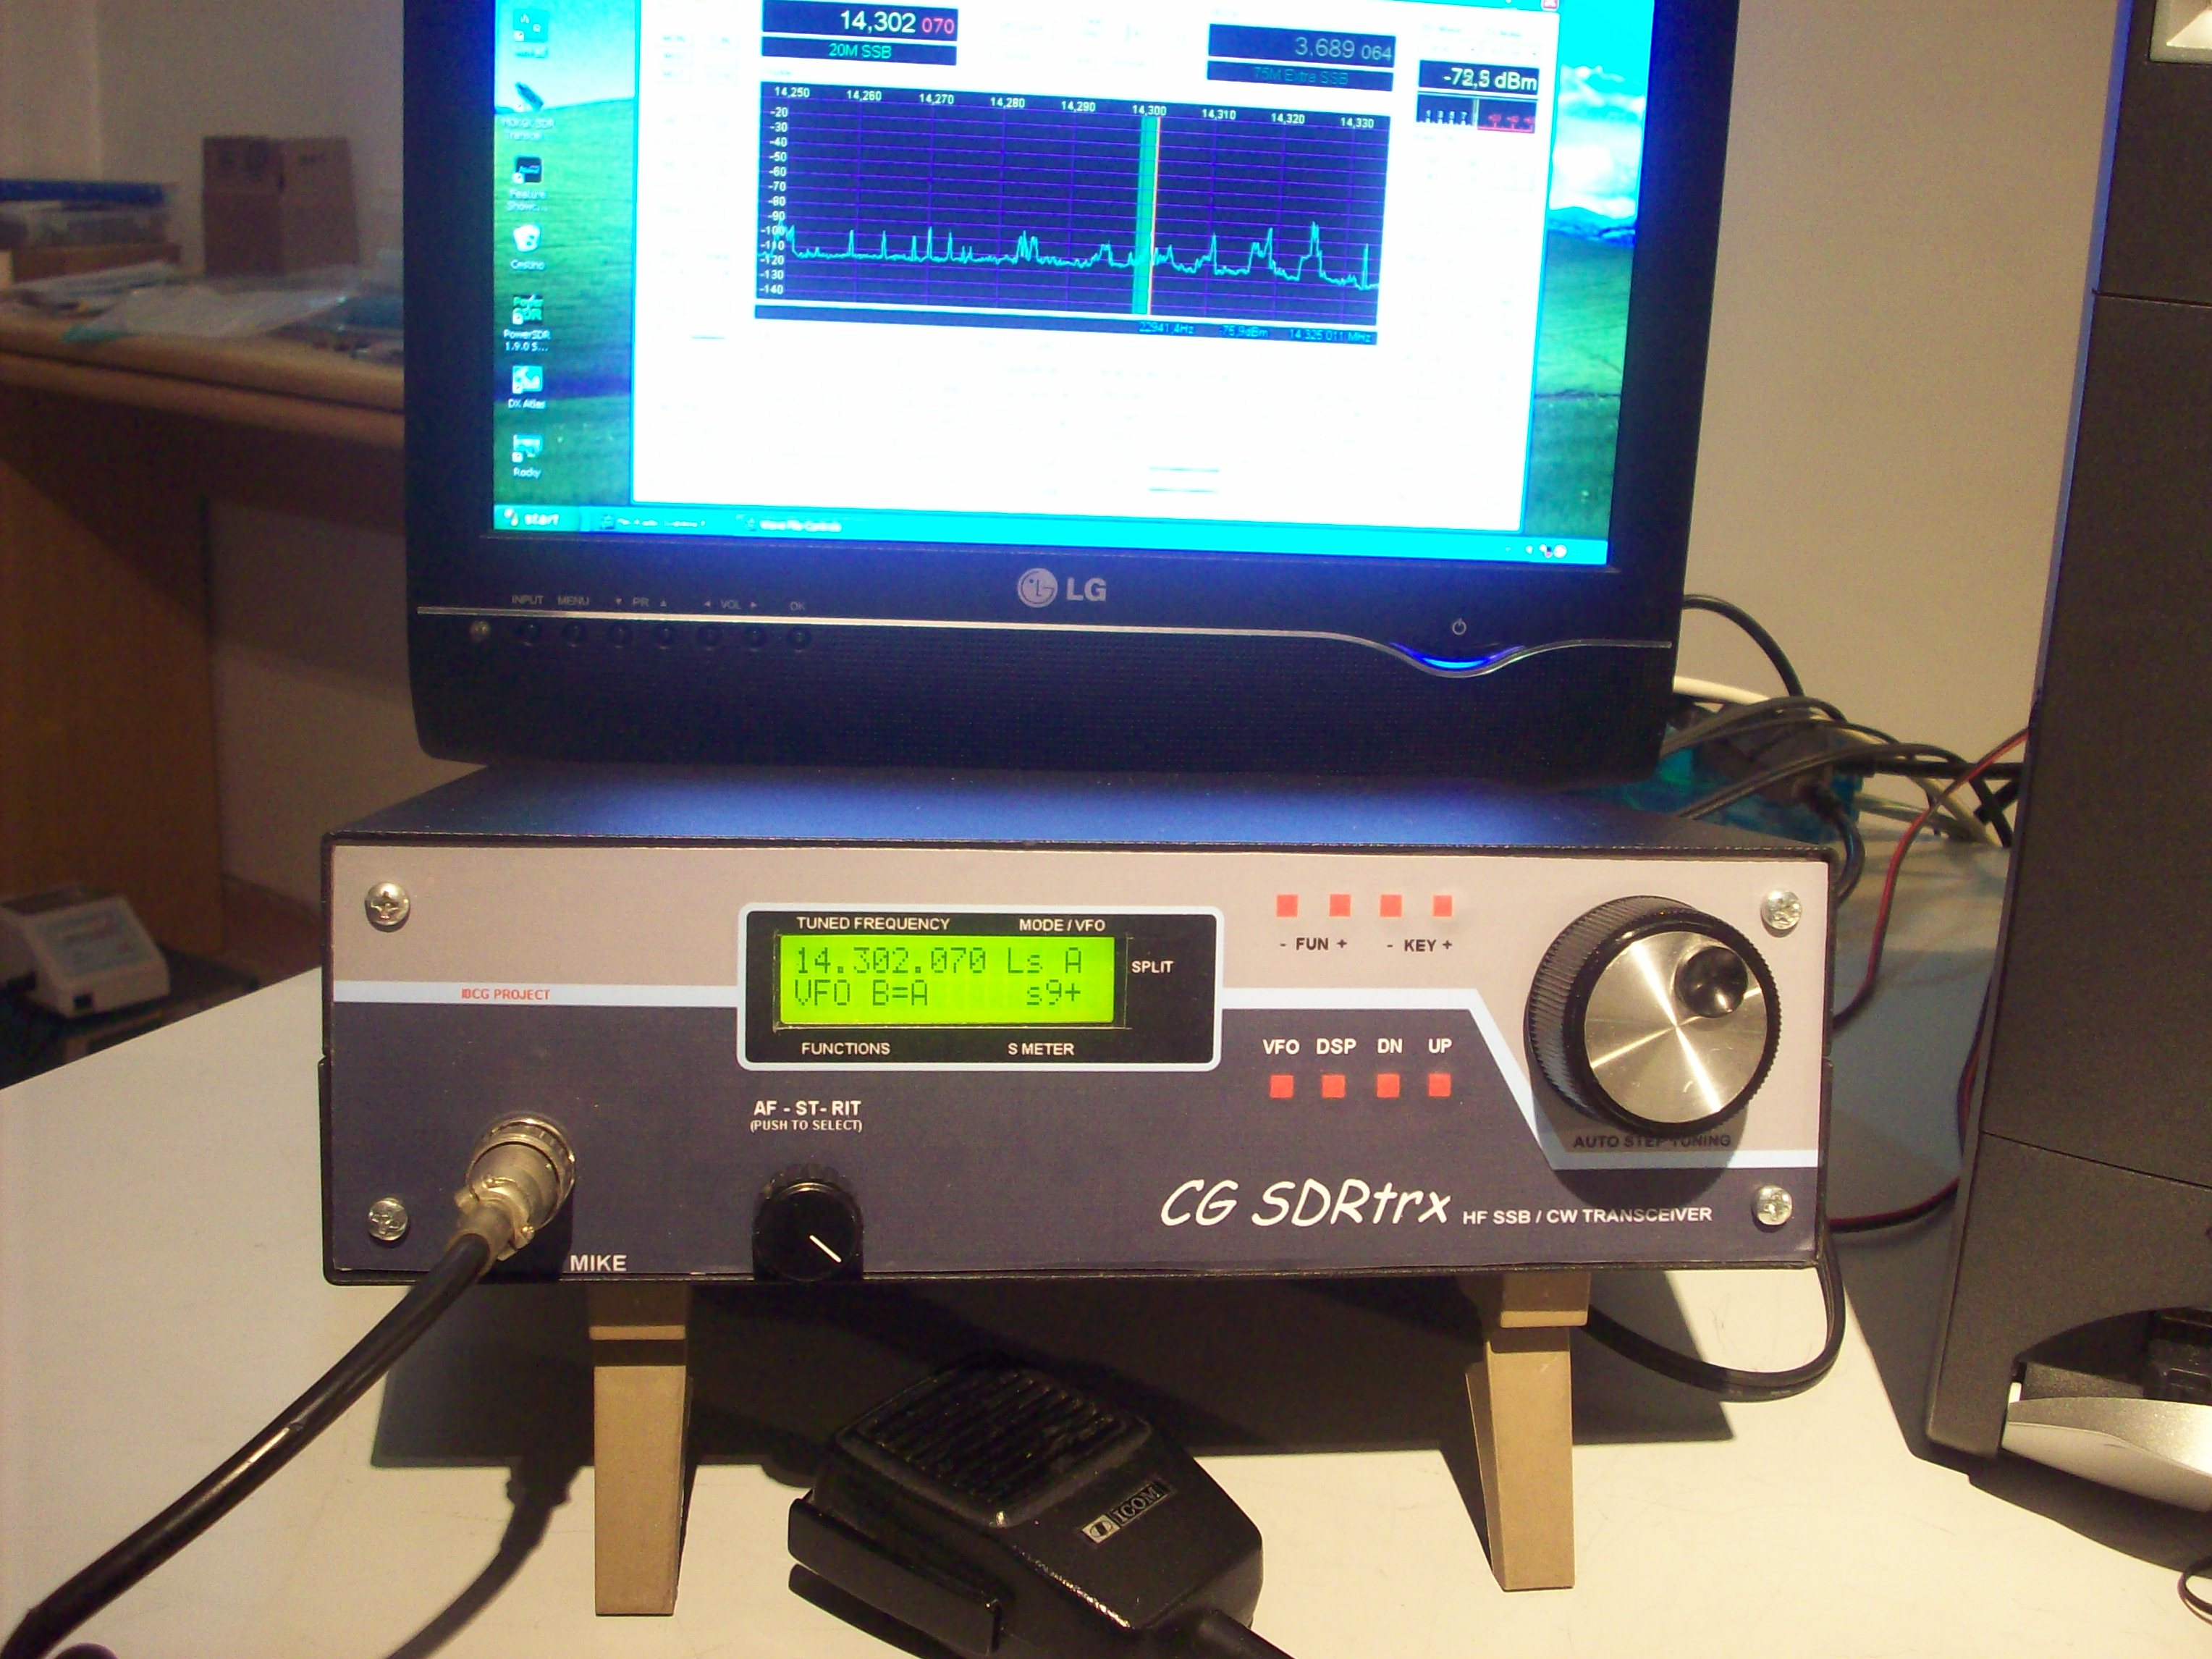 I0CG SDR receiver project